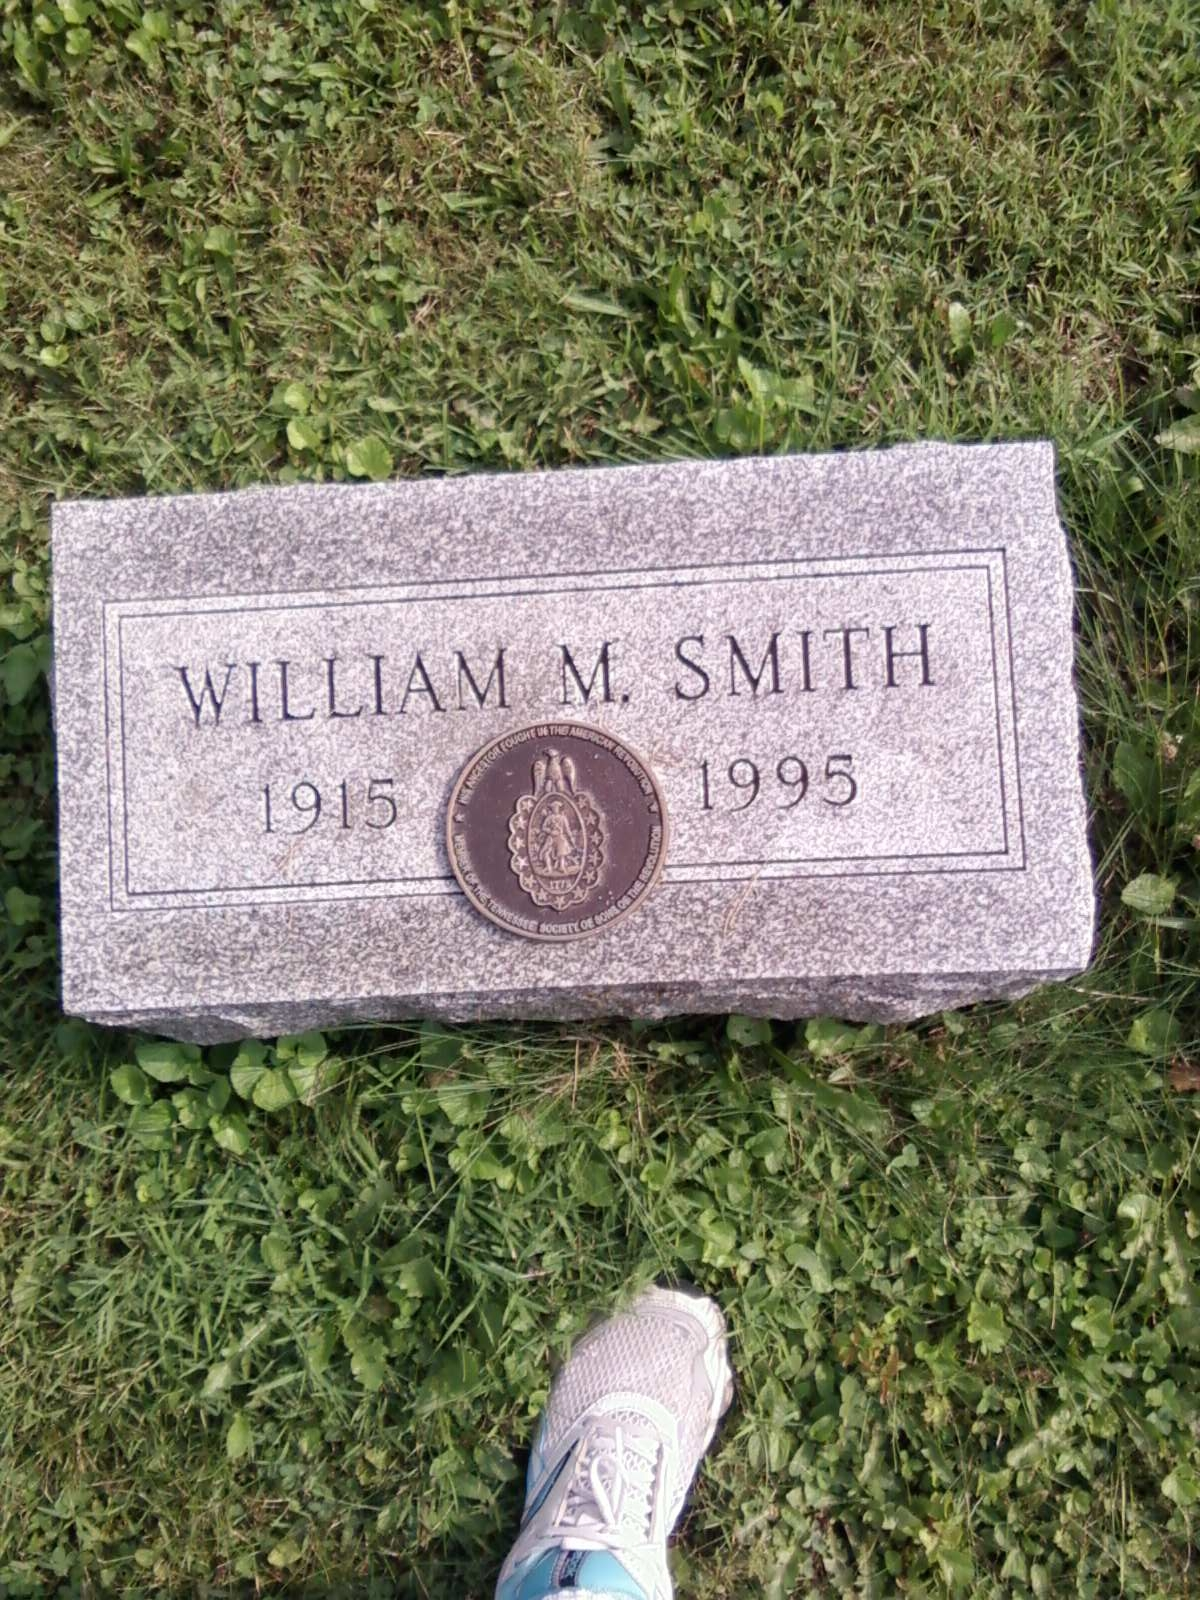 William M Smith